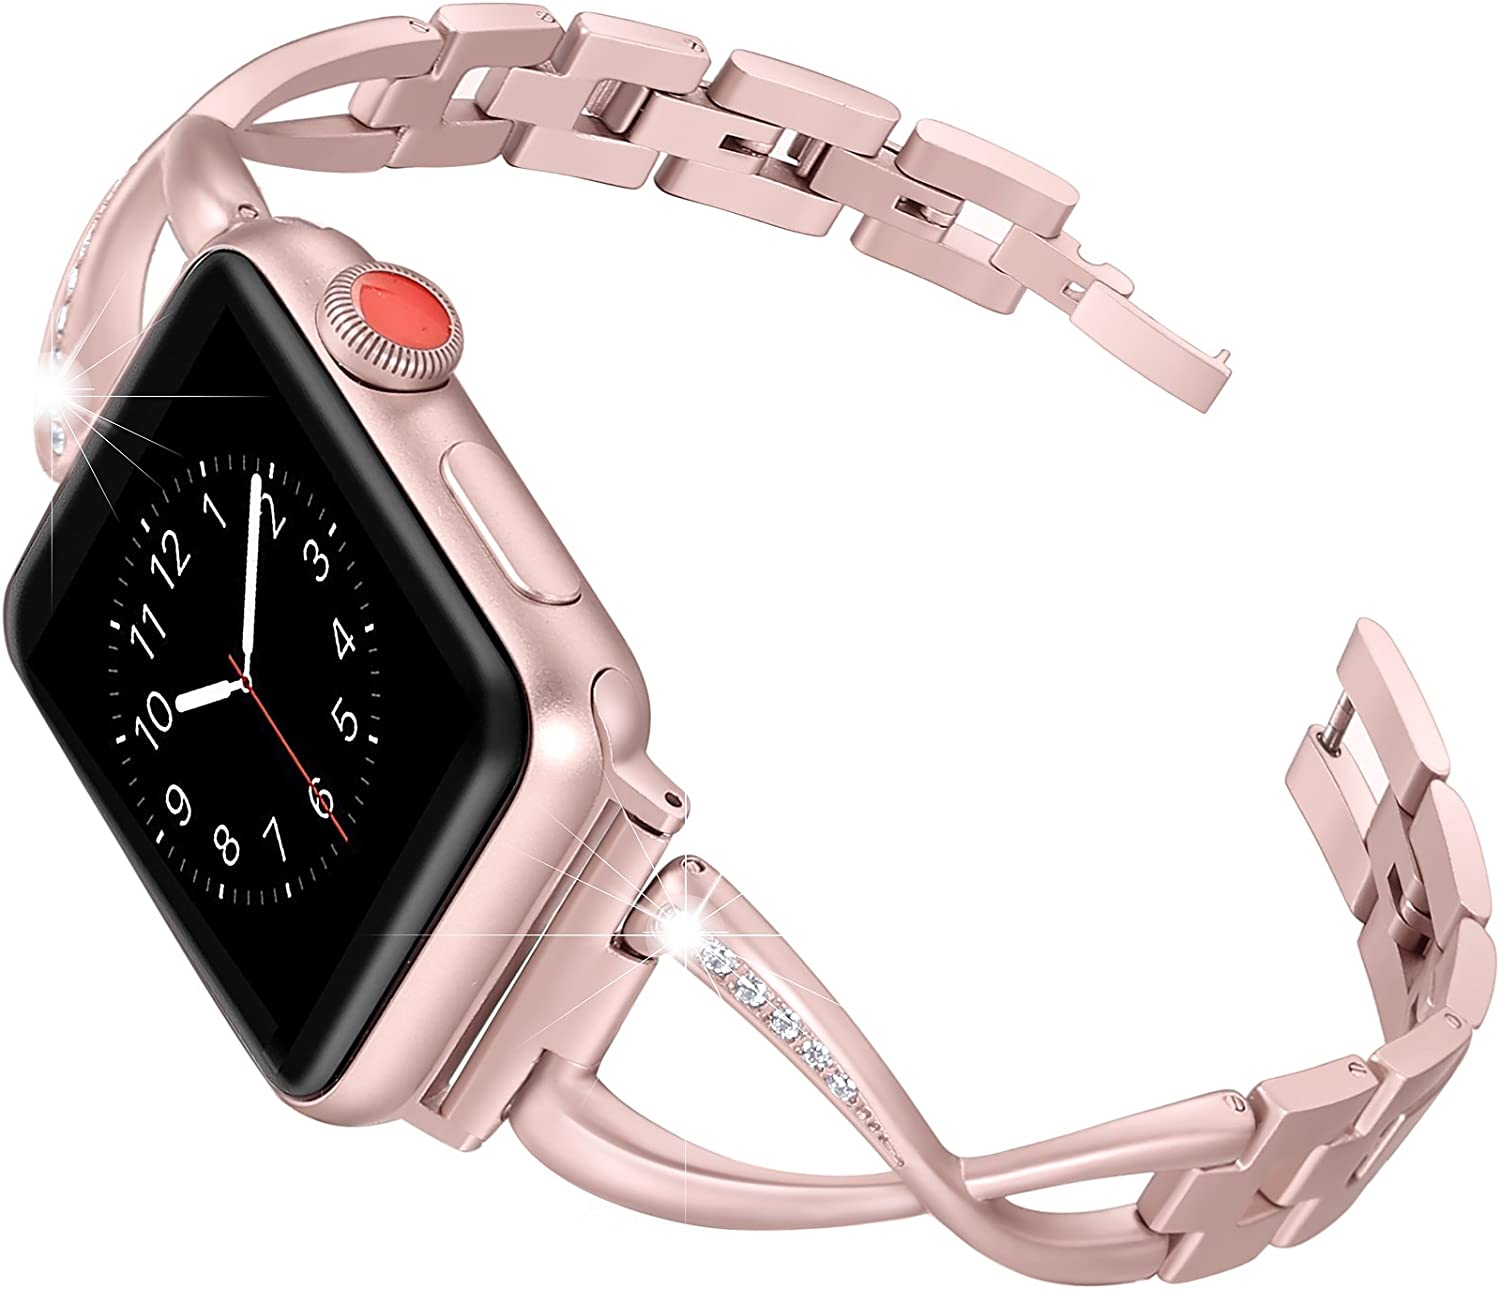 Secbolt Bands Compatible Apple Watch Band 38mm 40mm 42mm 44mm Iwatch Series 6/5/4/3/2/1 SE Women Dressy Jewelry Stainless Steel Accessories Wristband Strap